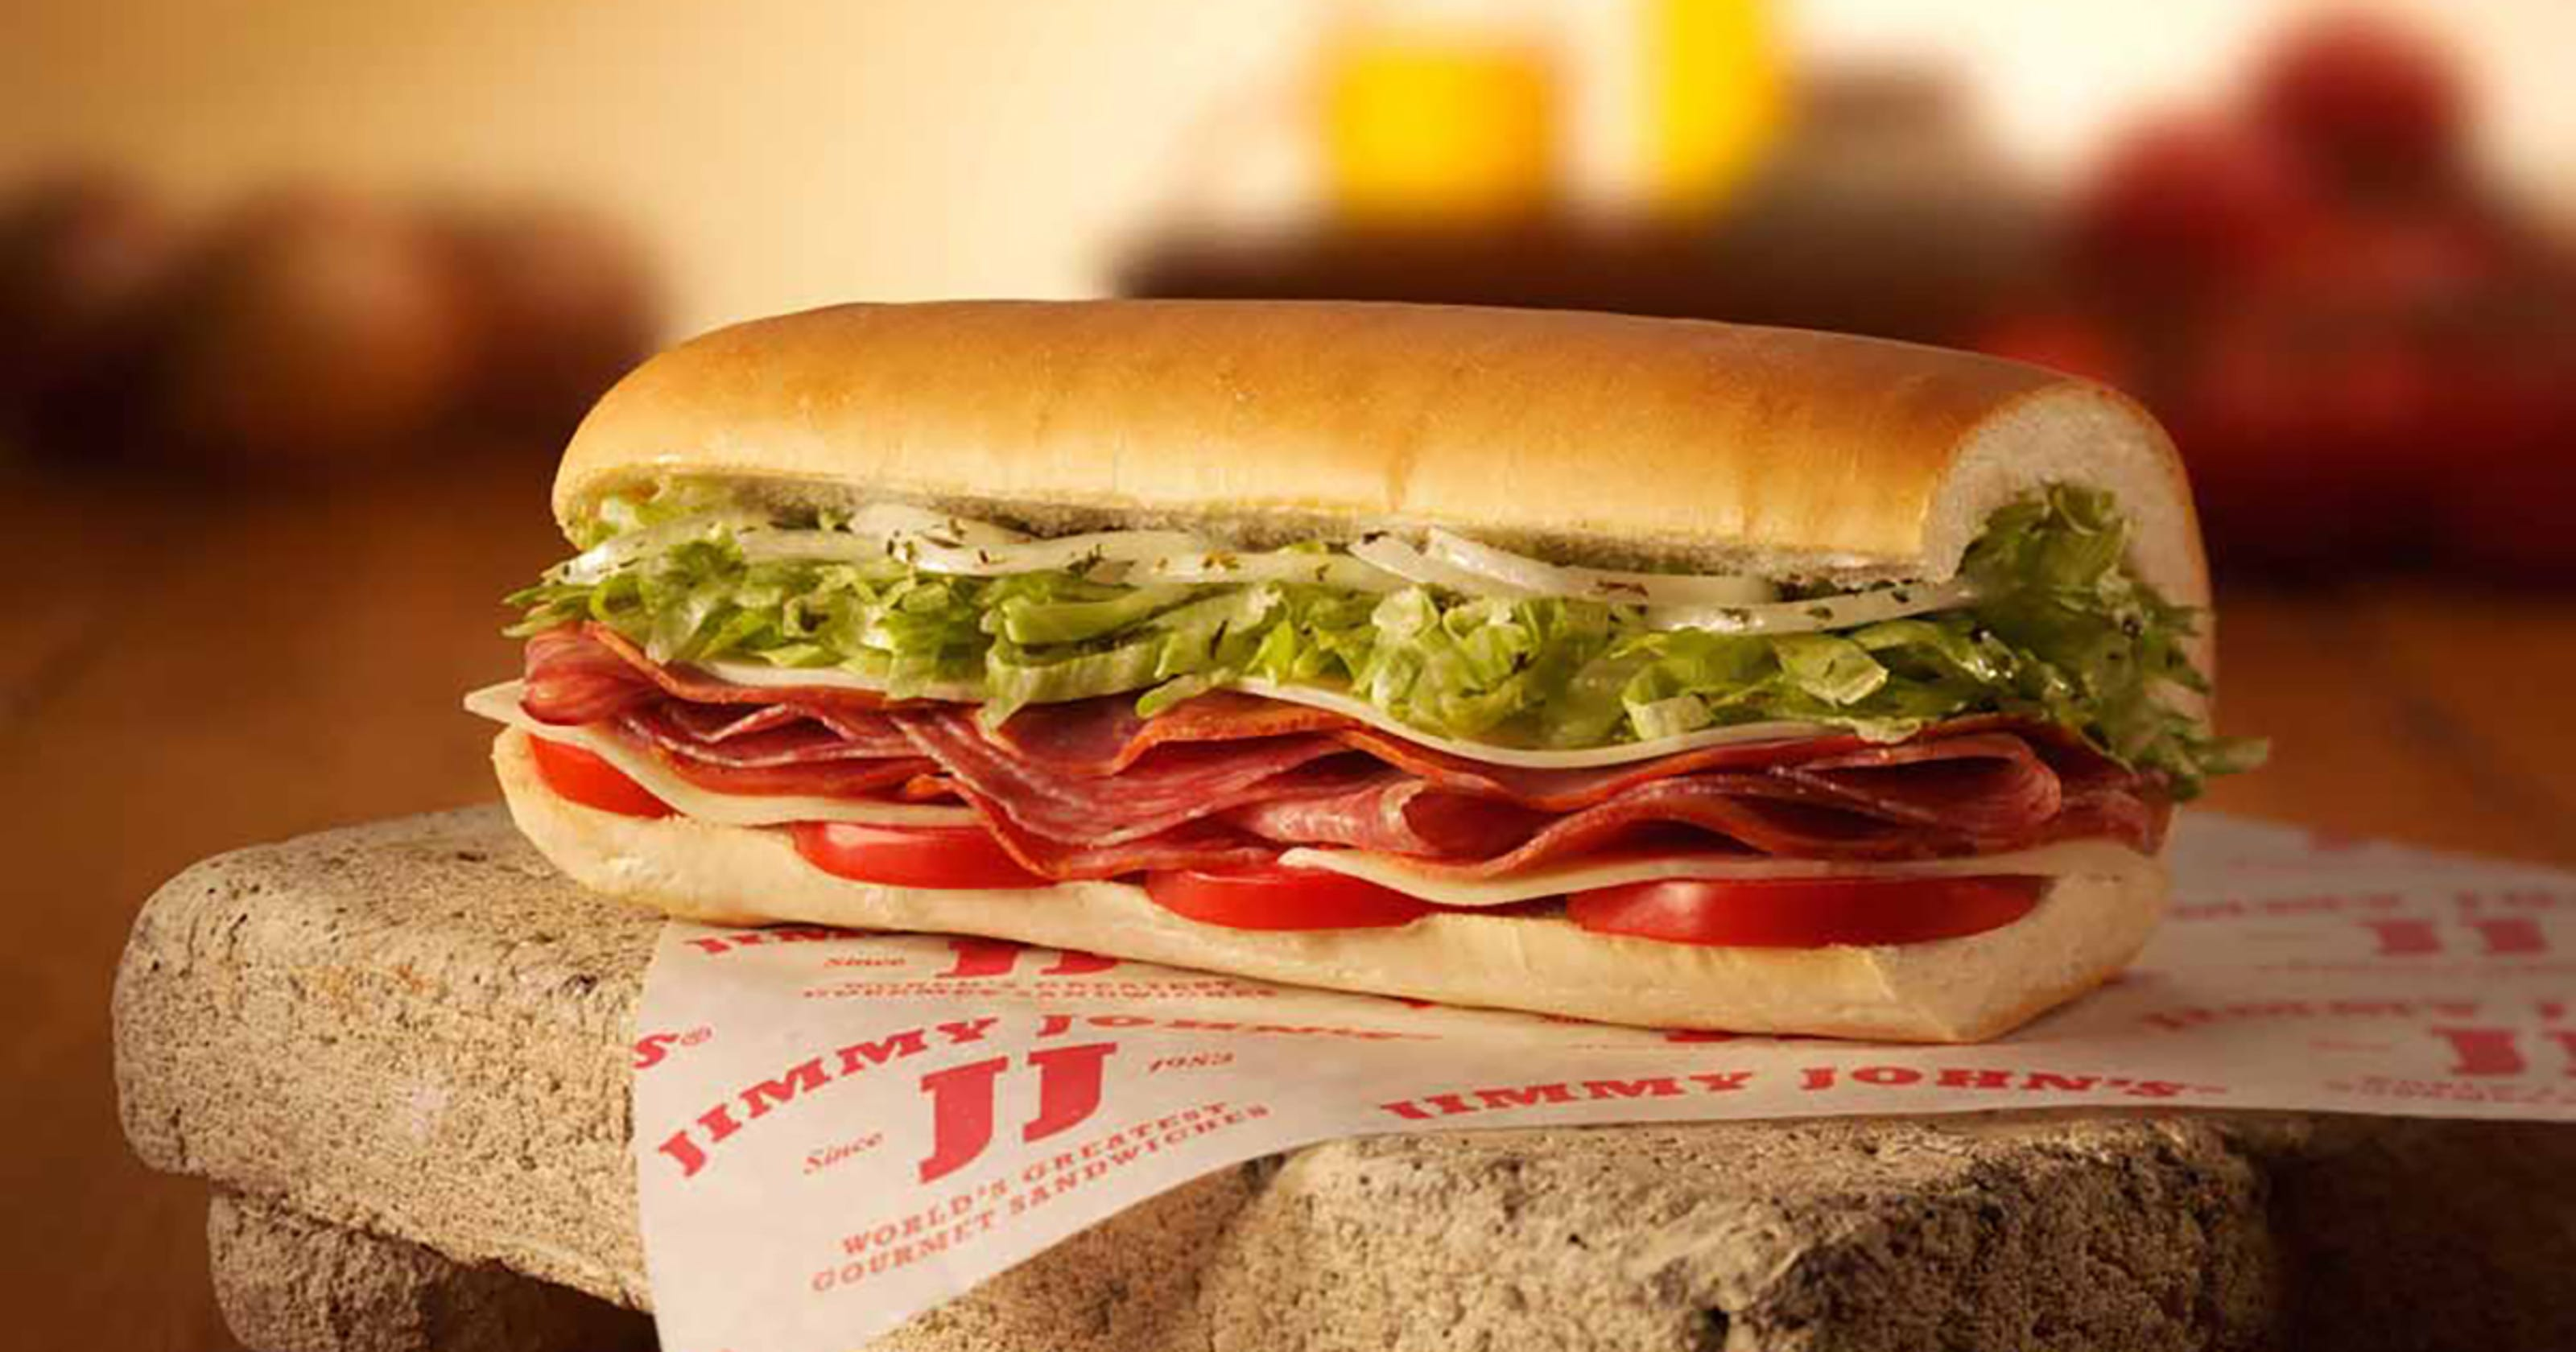 jimmy johns sandwiches - 1140×641